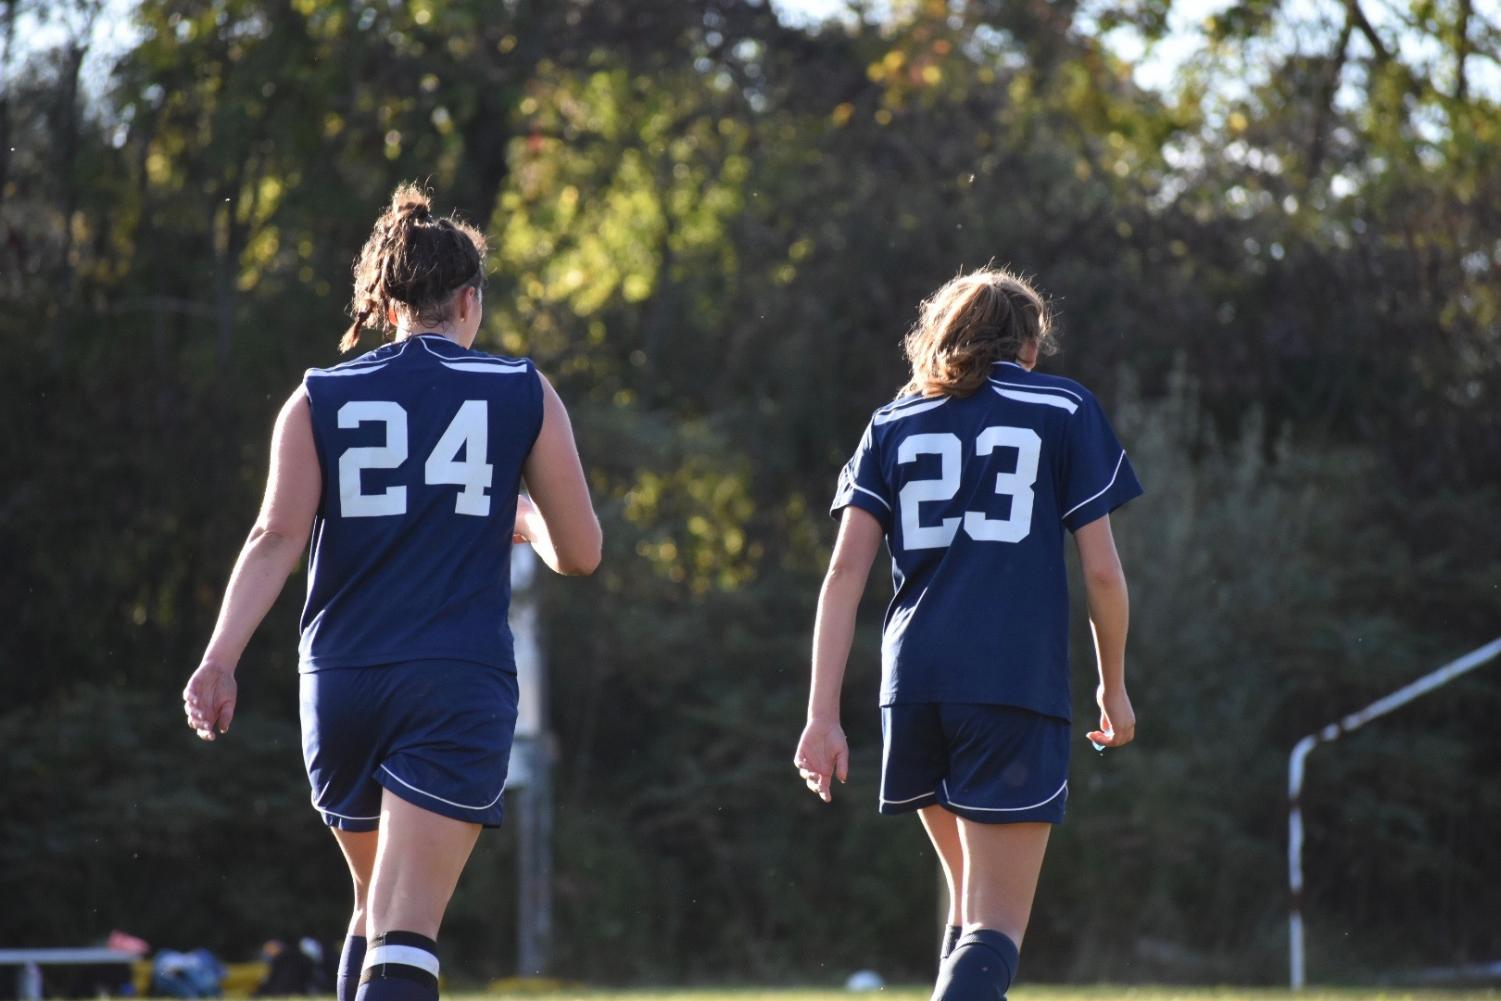 "Tasha White and Rachel Brackett heading time the bench after a 2018 game against Souhegan. This is White's fourth year on Varsity as a senior and Brackett's  second as a sophomore. ""We have girls that can play any position and well and that's not common, it's great to have a solid team on the field and even on the bench because you never know what will happen,"" said White."